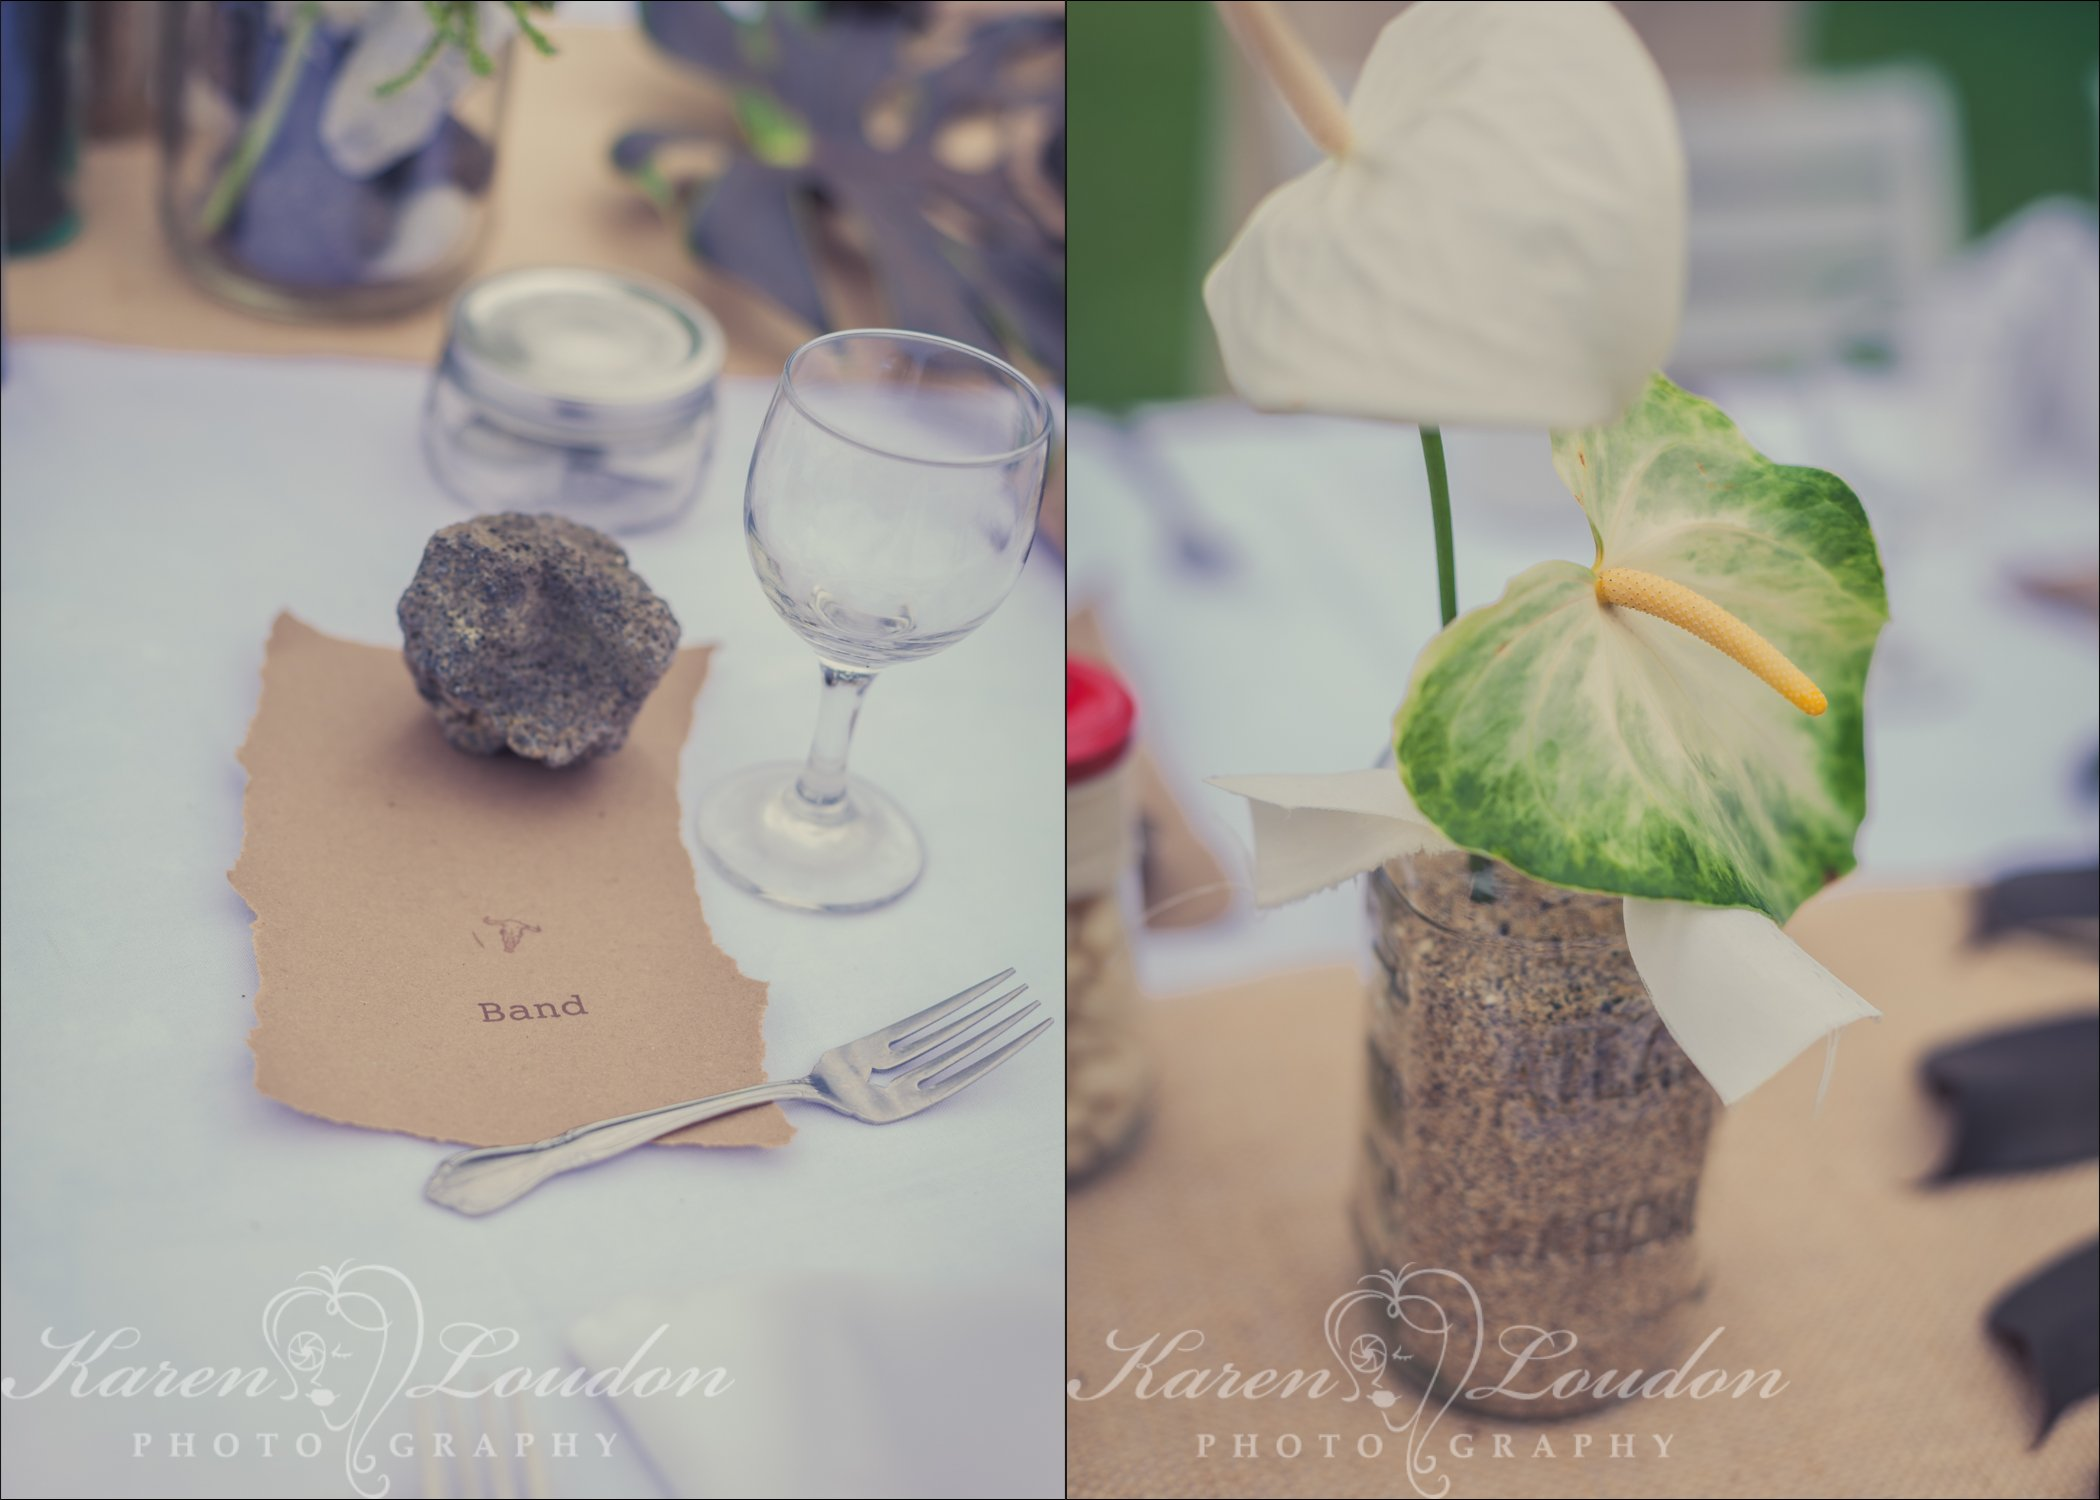 King kamehamaha Hotel wedding reception © Karen Loudon Photography-0093